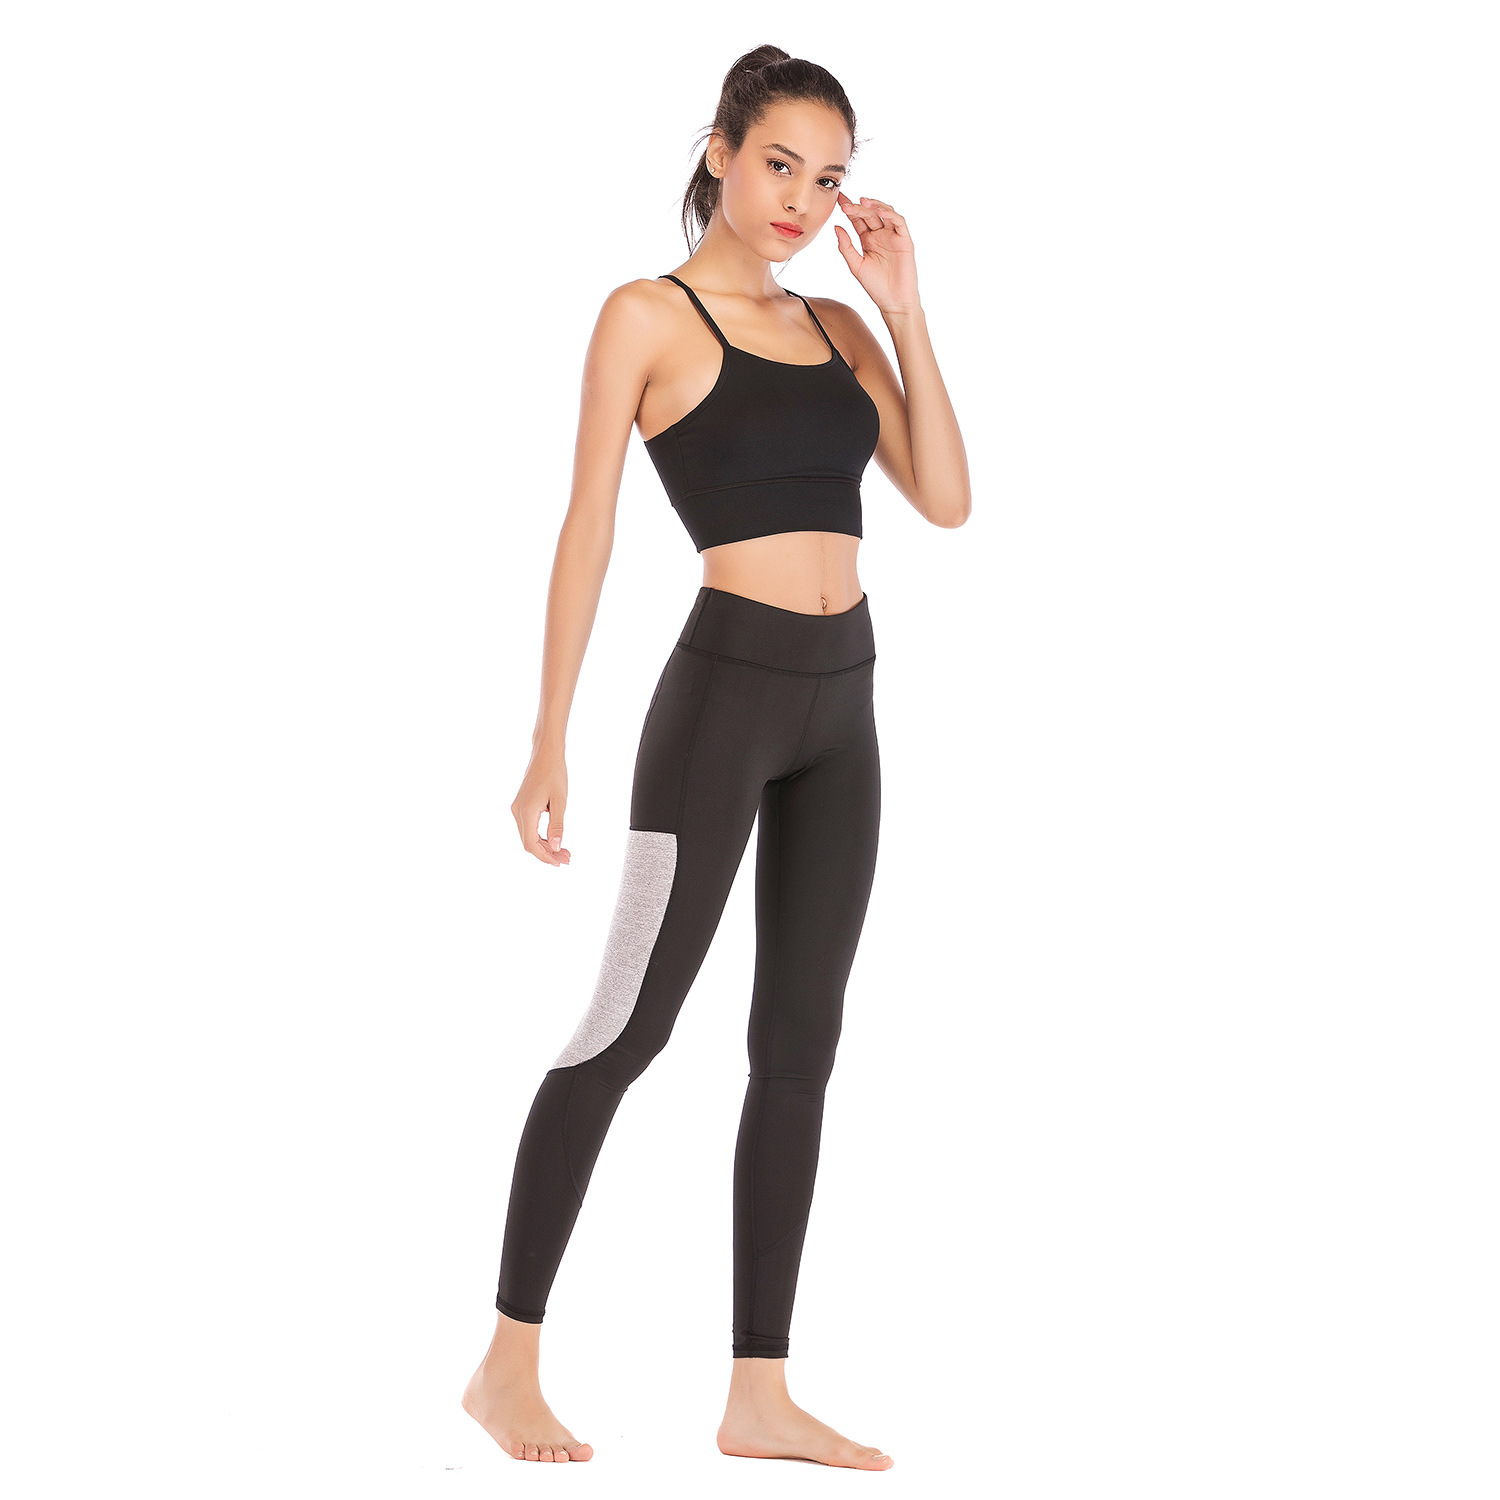 Cobb & Co Mann Women's Clothing Sports Pants Stretch Quick-Dry Workout Clothes Tight High-waisted Skinny Ankle-length Pants